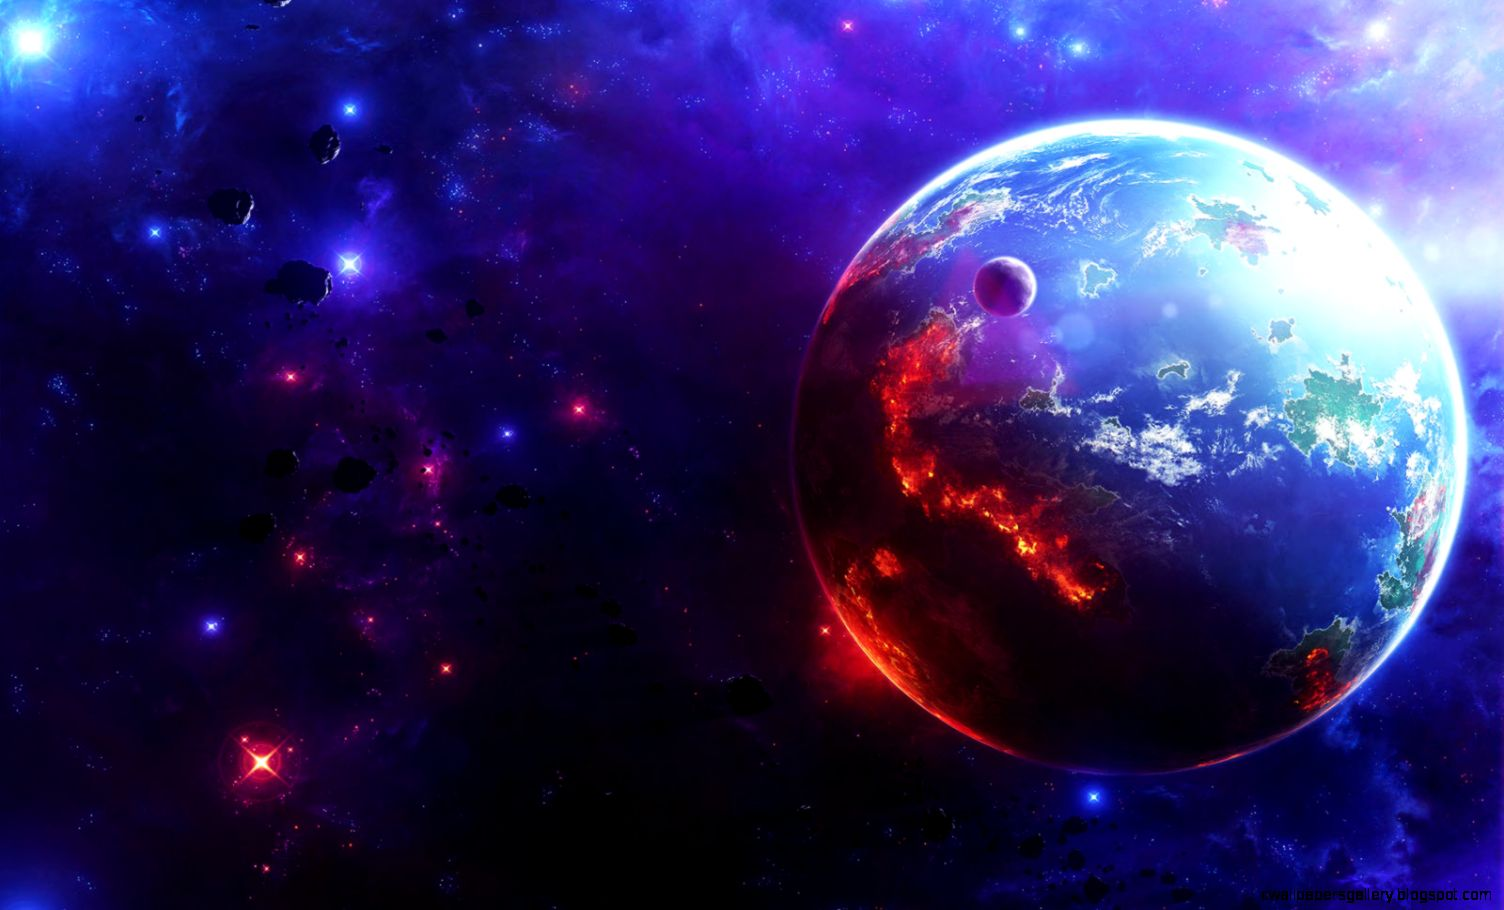 38 Planet Images and Wallpapers for Mac PC  SHunVMall Graphics